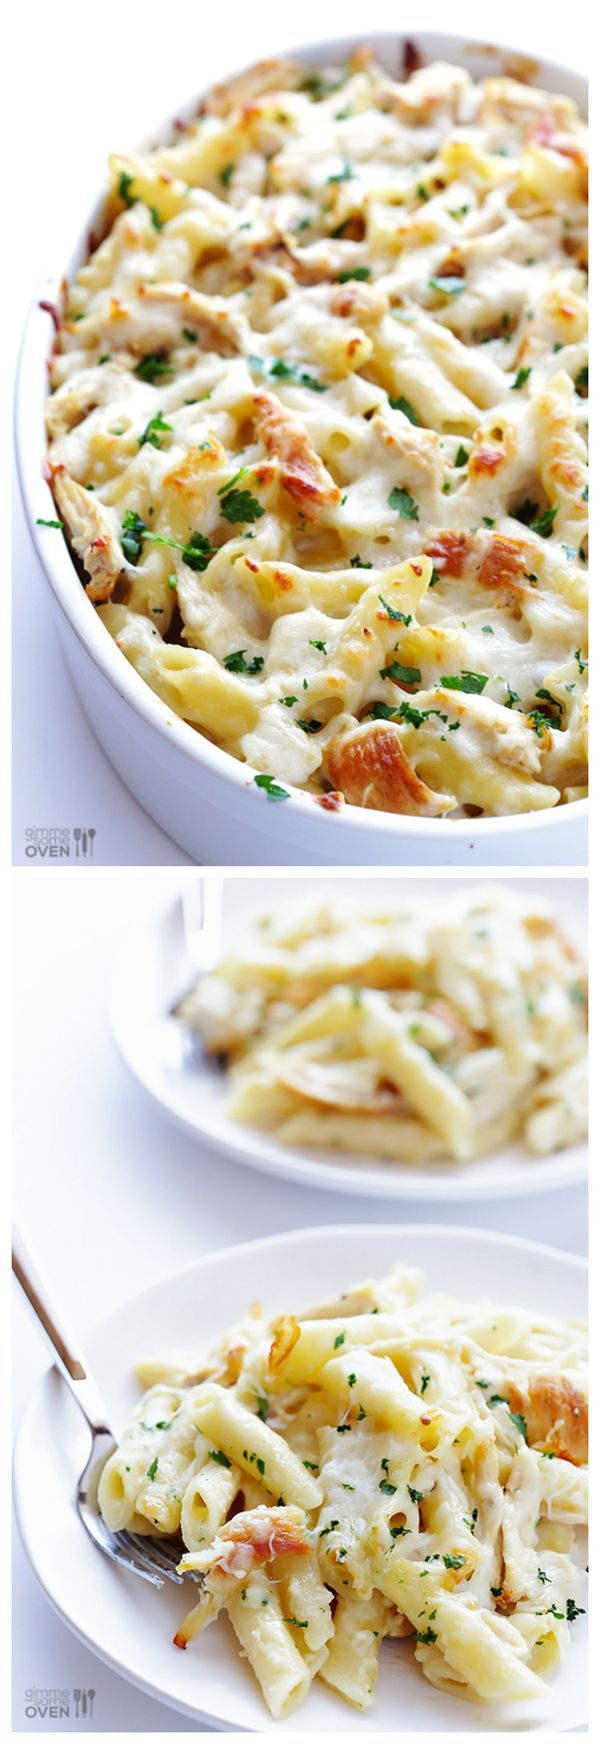 Chicken Alfredo Baked Ziti  Chicken Alfredo Baked Ziti — quick, easy, affordable, picky-eater friendly, and SO GOOD! #pasta #italian #recipe The post Chicken Alfredo Baked Ziti appeared first on Woman Casual.